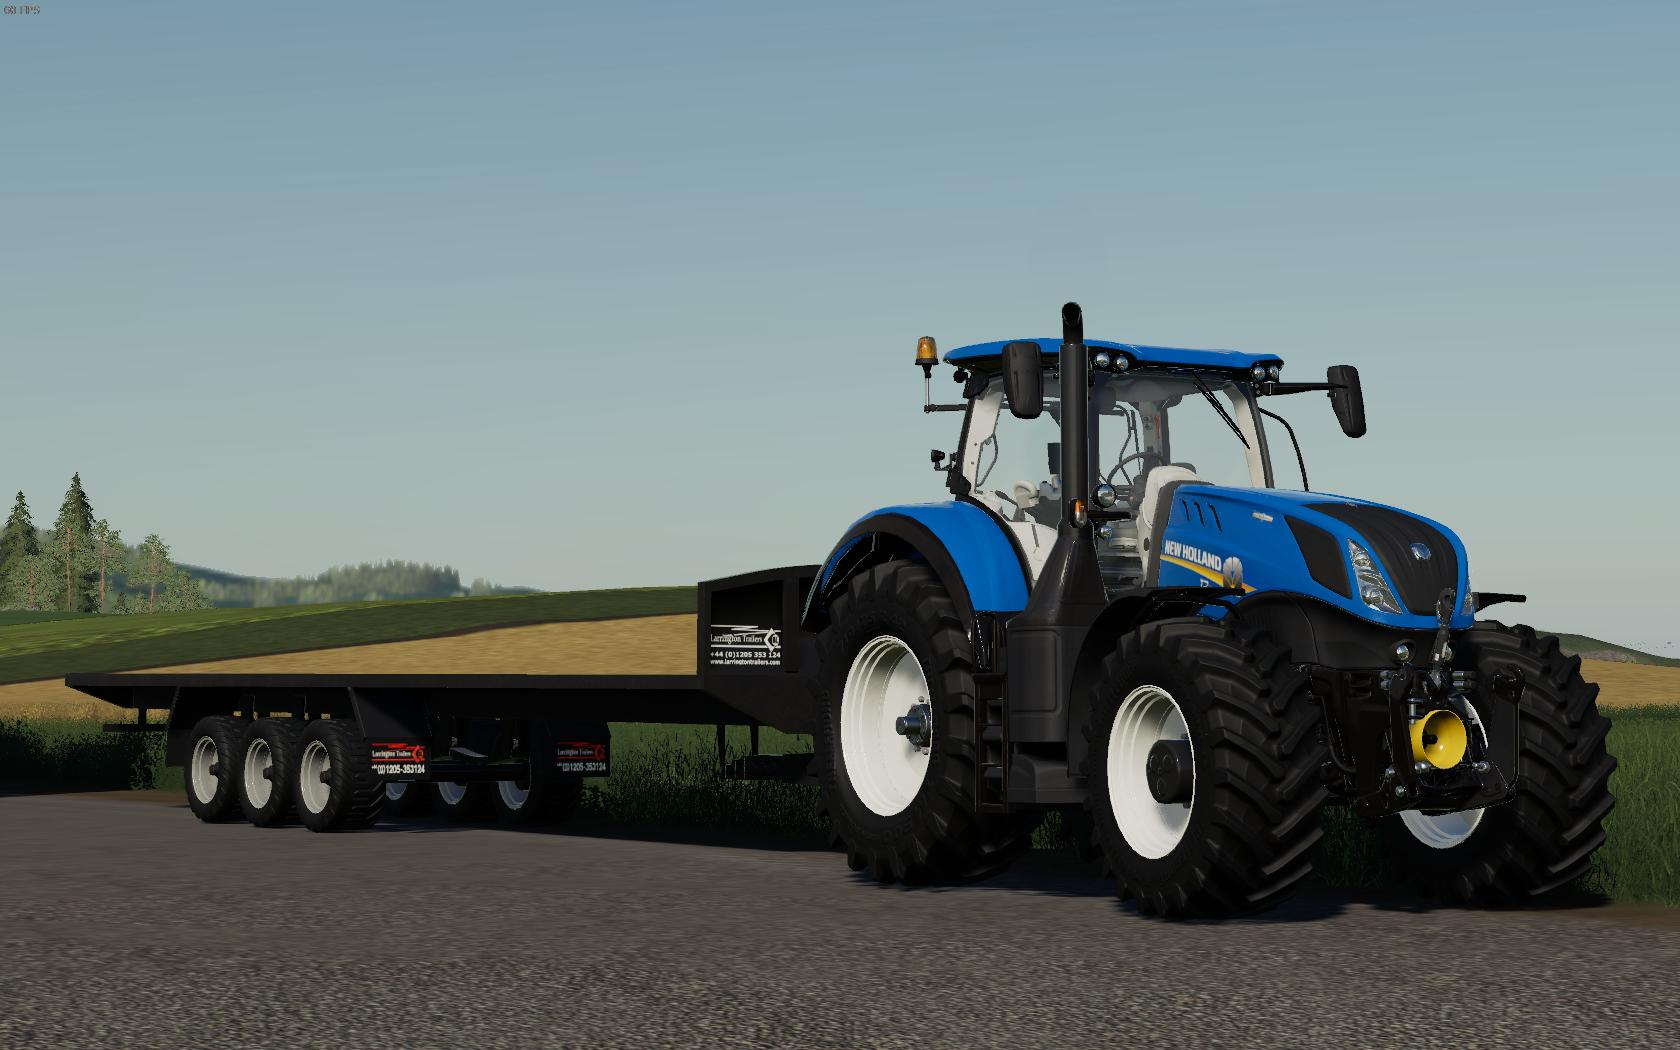 Larrington 42 Foot Bale Trailer v1 0 0 0 FS19 - Farming Simulator 19